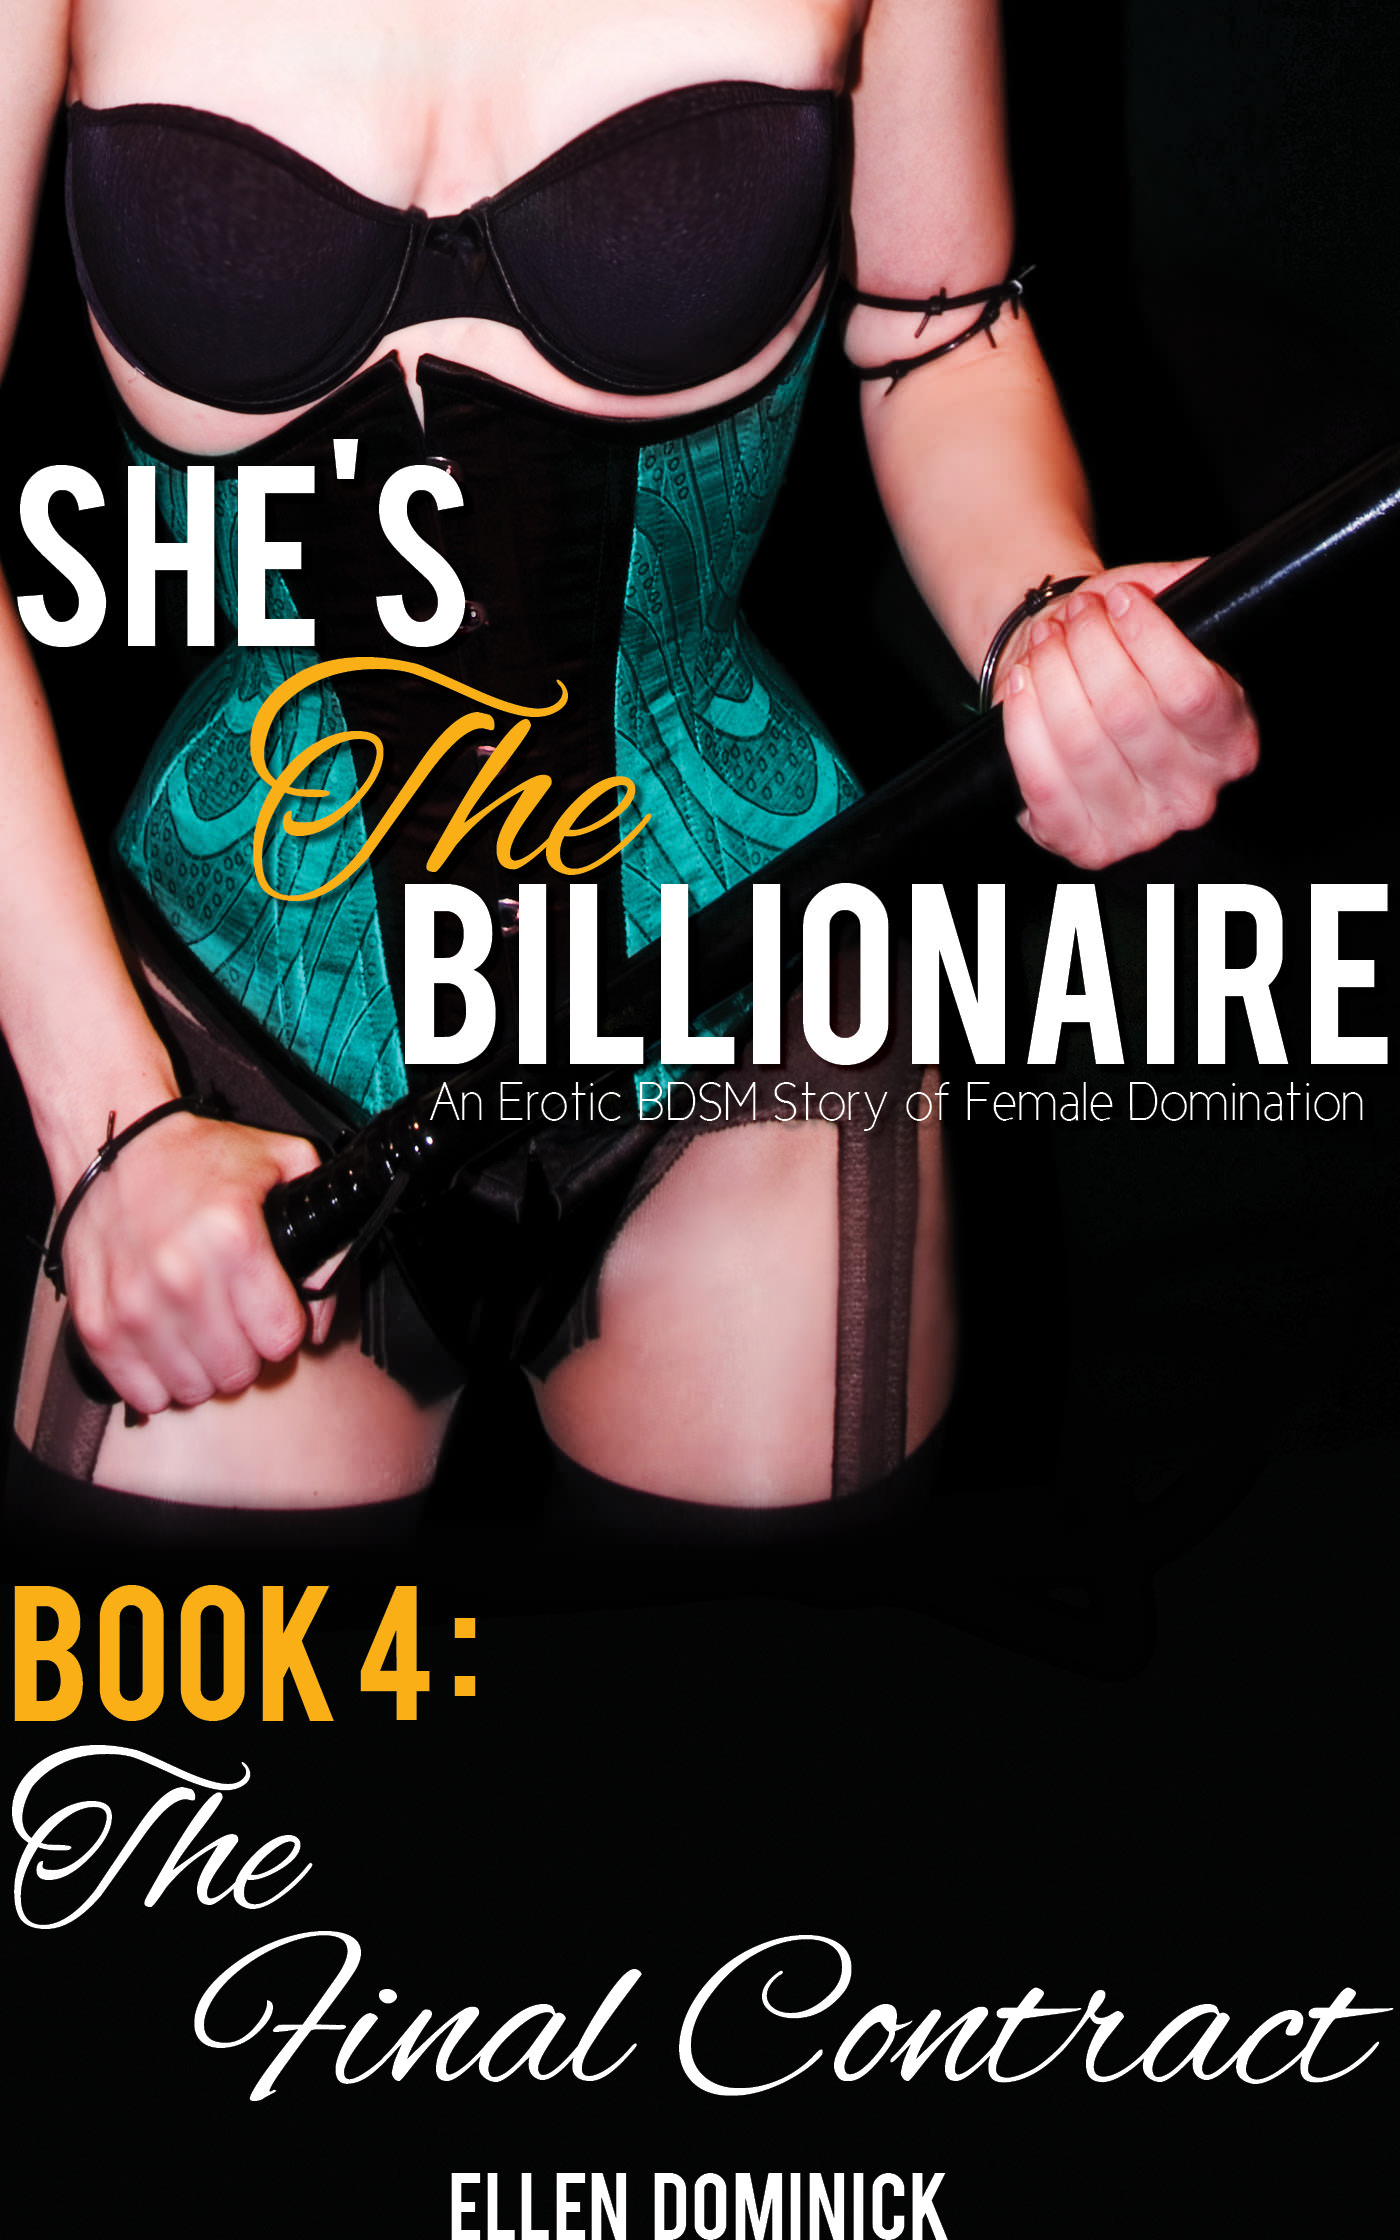 The final contract (she's the billionaire: an erotic bdsm story of female domination)